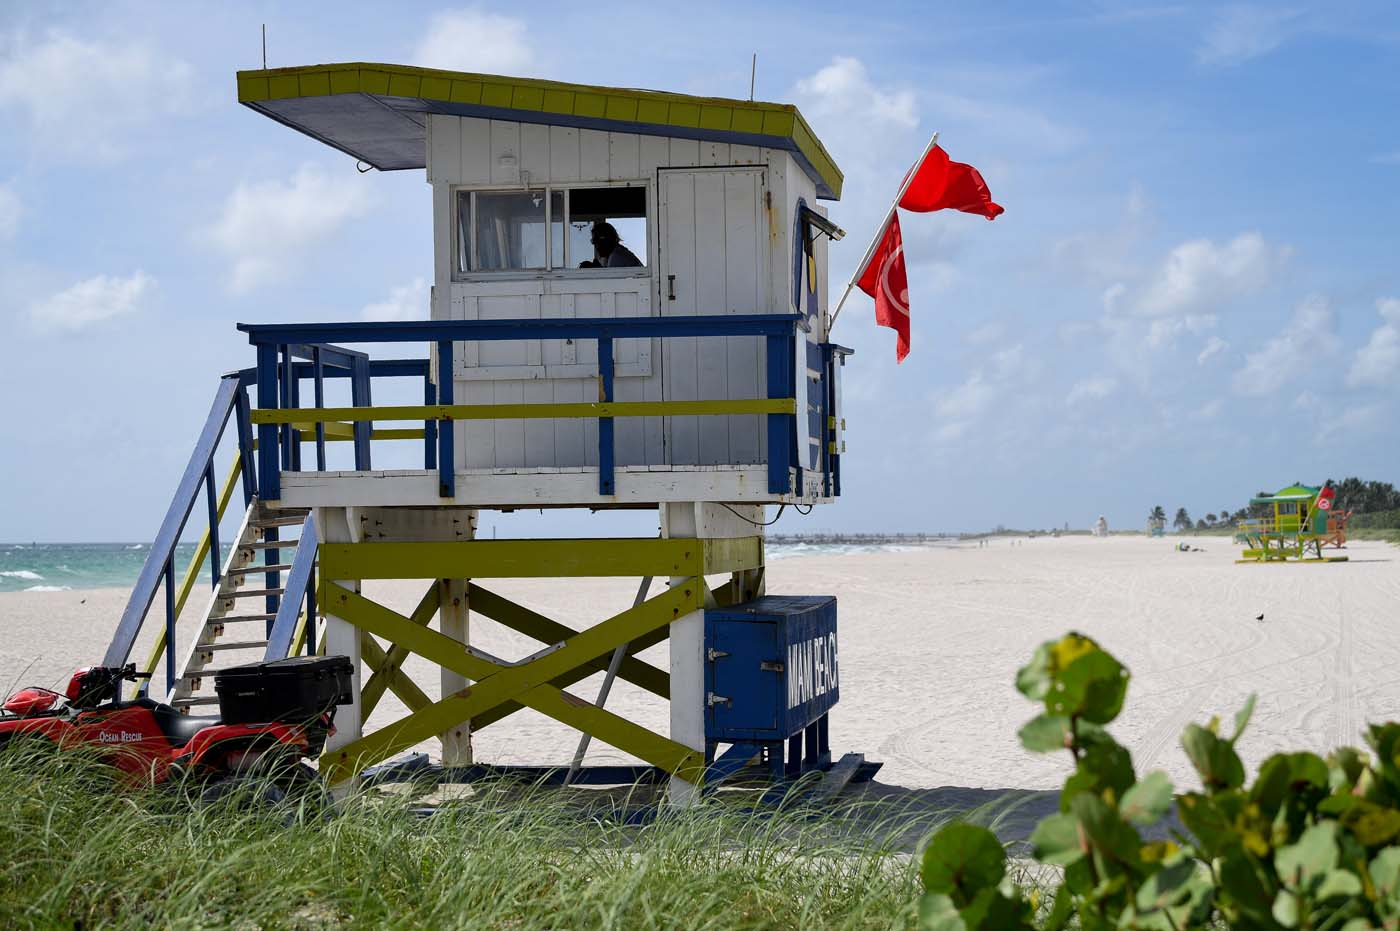 A lifeguard in beach patrol tower keeps watch along a stretch of the beach in Miami Beach, Florida, U.S., September 8, 2017. REUTERS/Bryan Woolston